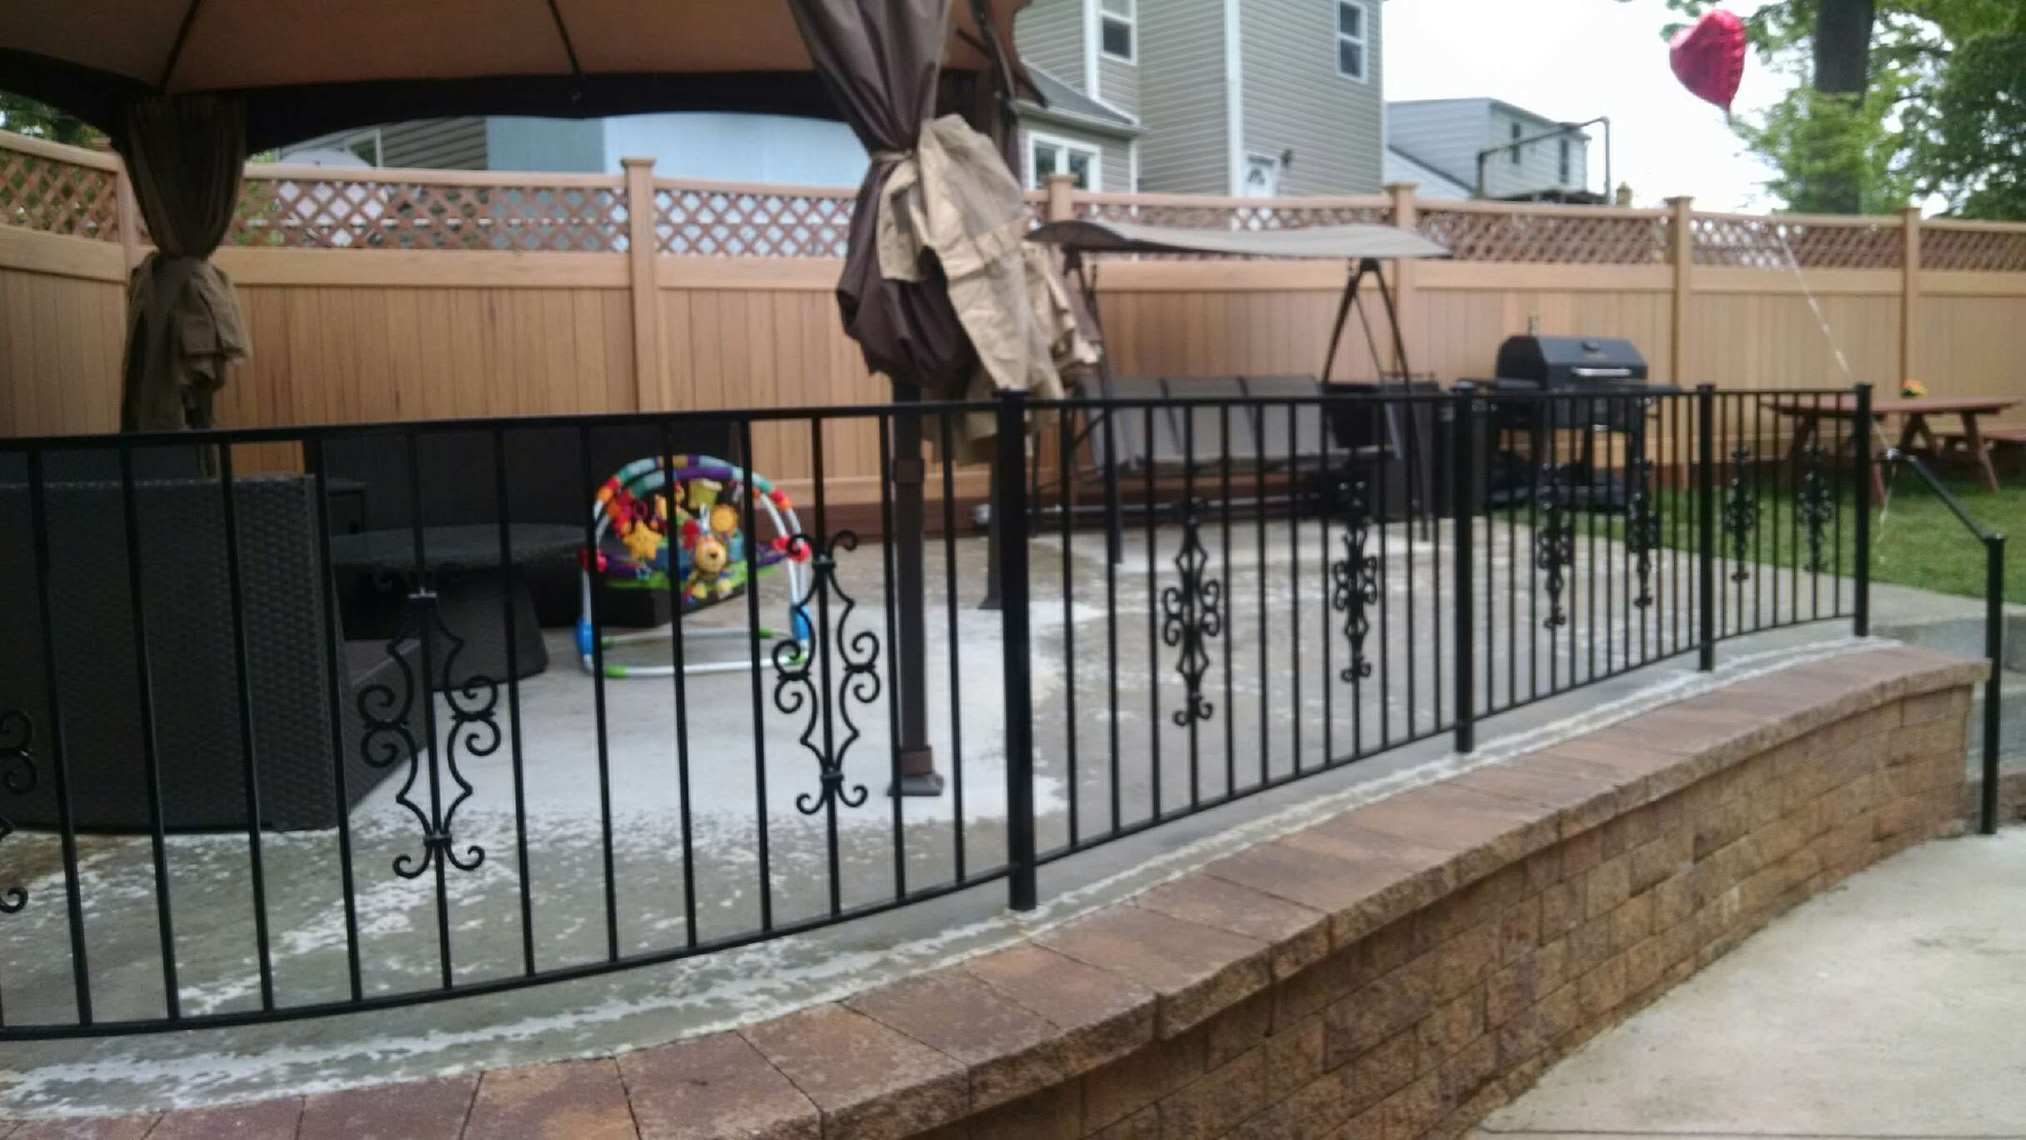 Patio fence w/ Victorian panels